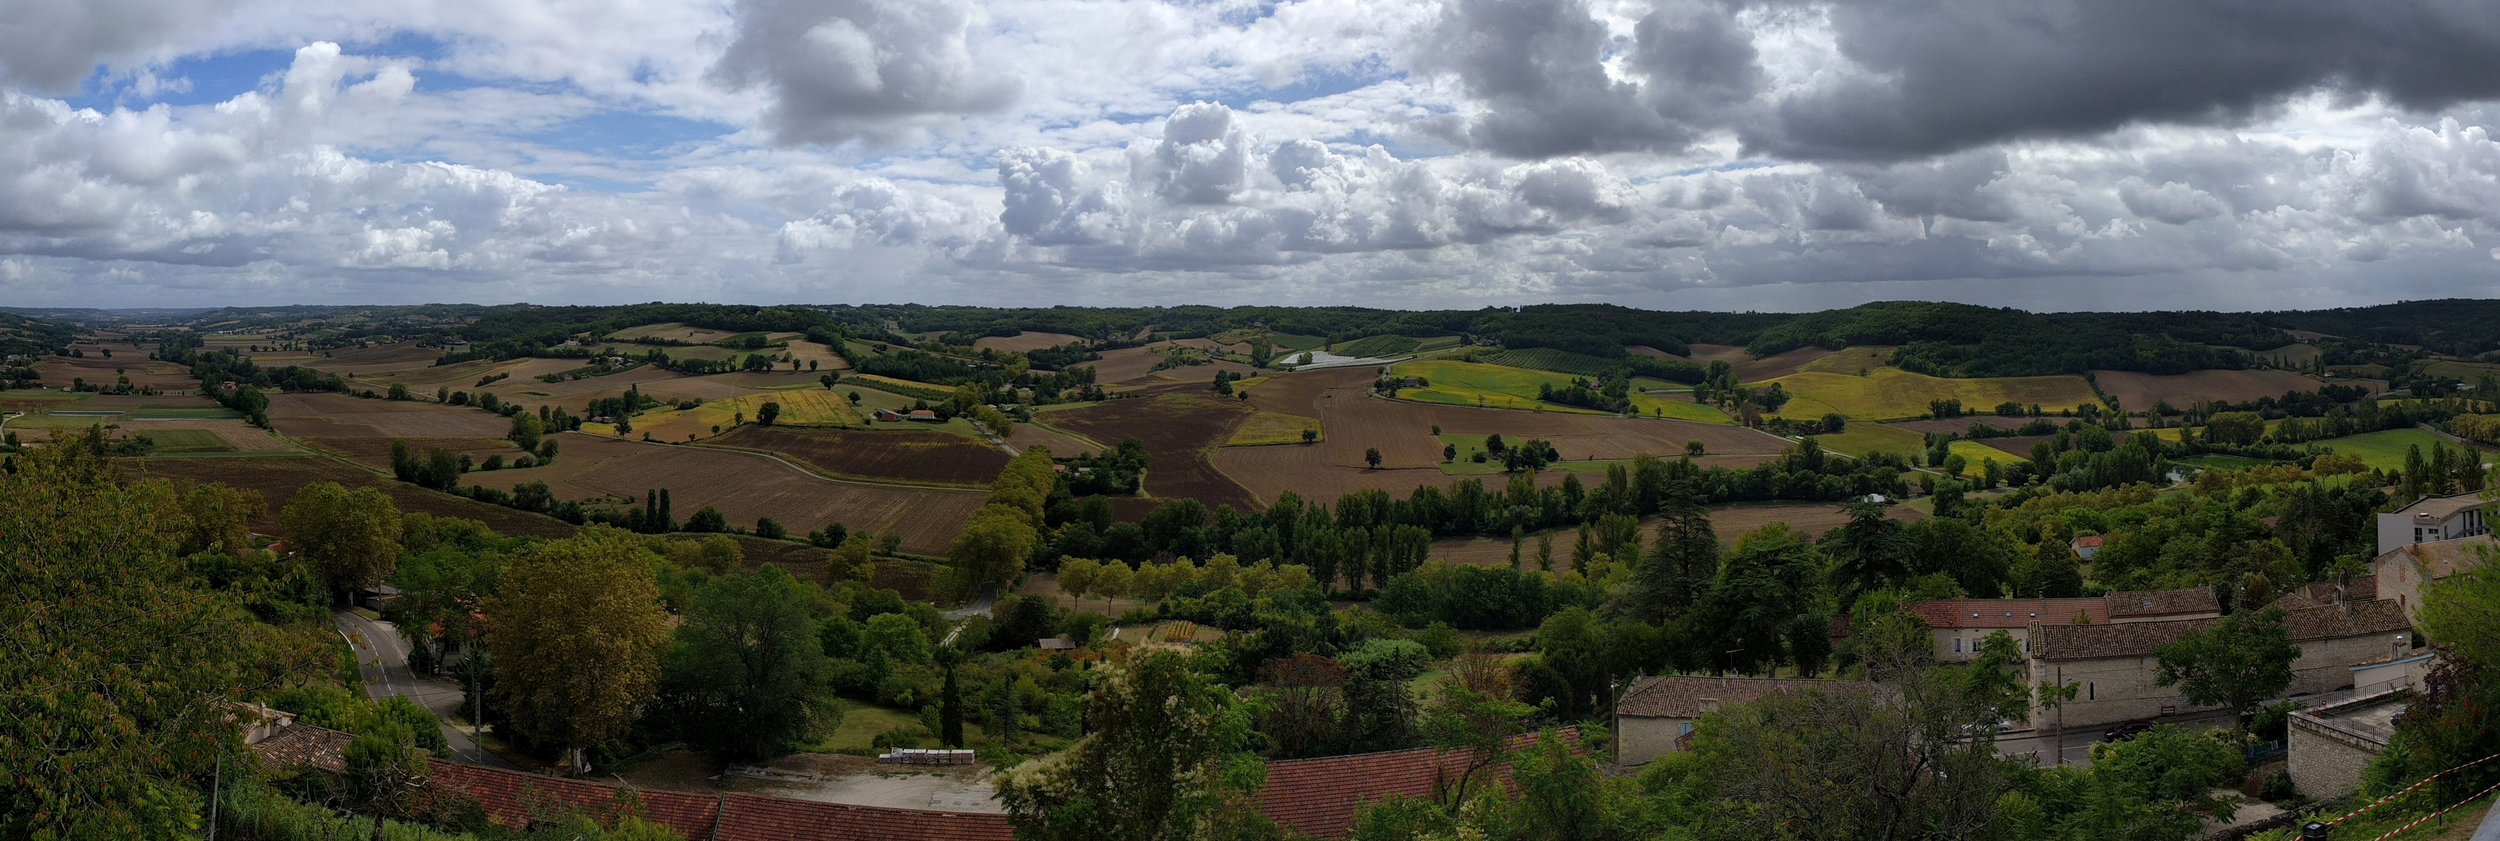 Cahors' hilly, farm studded landscape; Photo taken from the village of Lauzerte